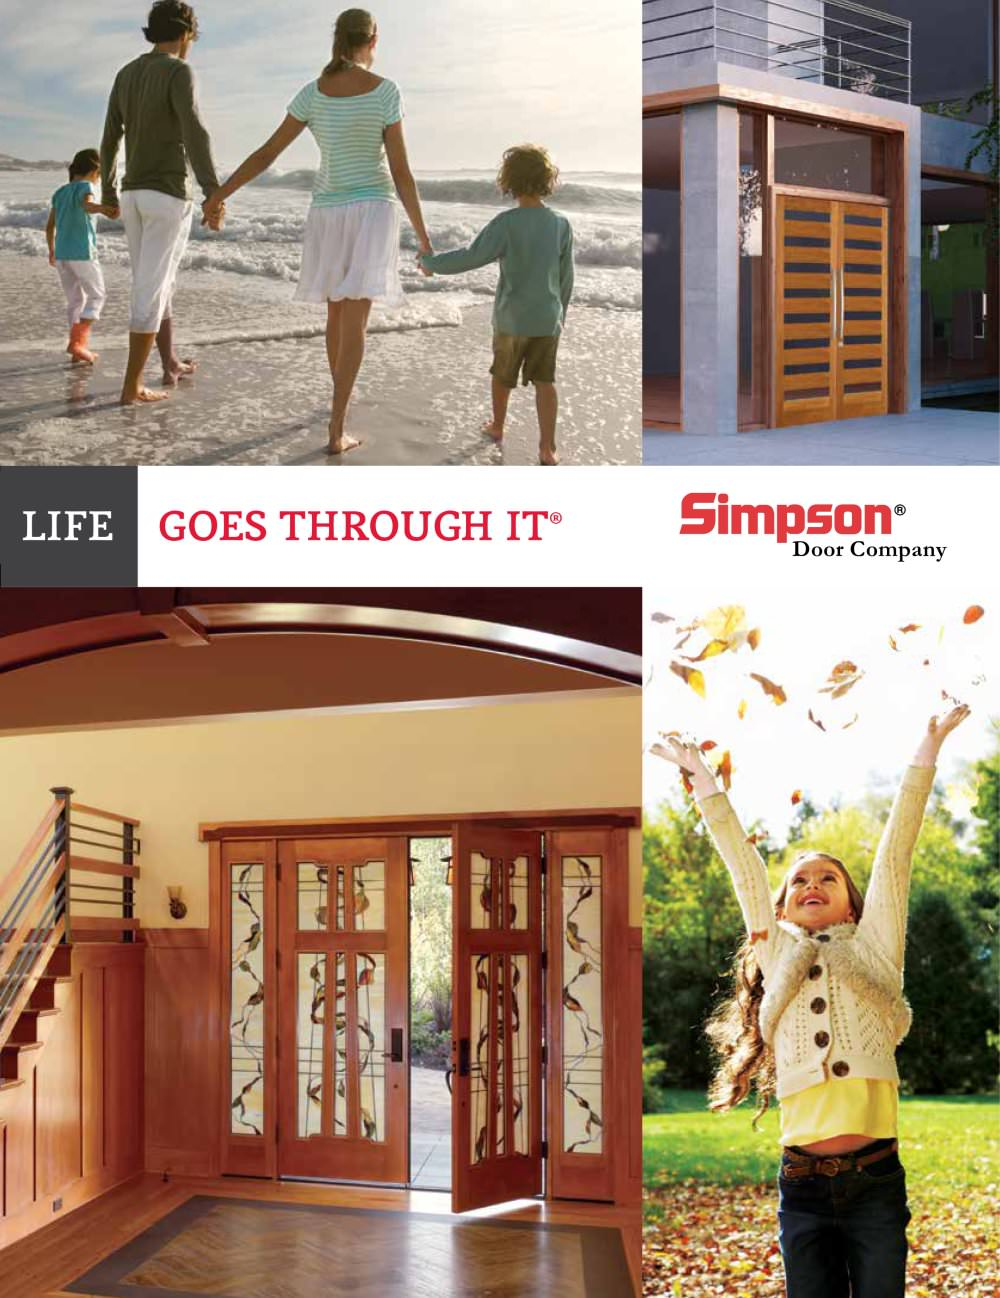 Simpson offers more standard wood entry doors than any other company in the industry, and they've been producing the highest quality wood entry doors since 1912, so you can be sure that with a Simpson entry door, you'll have a beautiful entry door that will last for years to come!